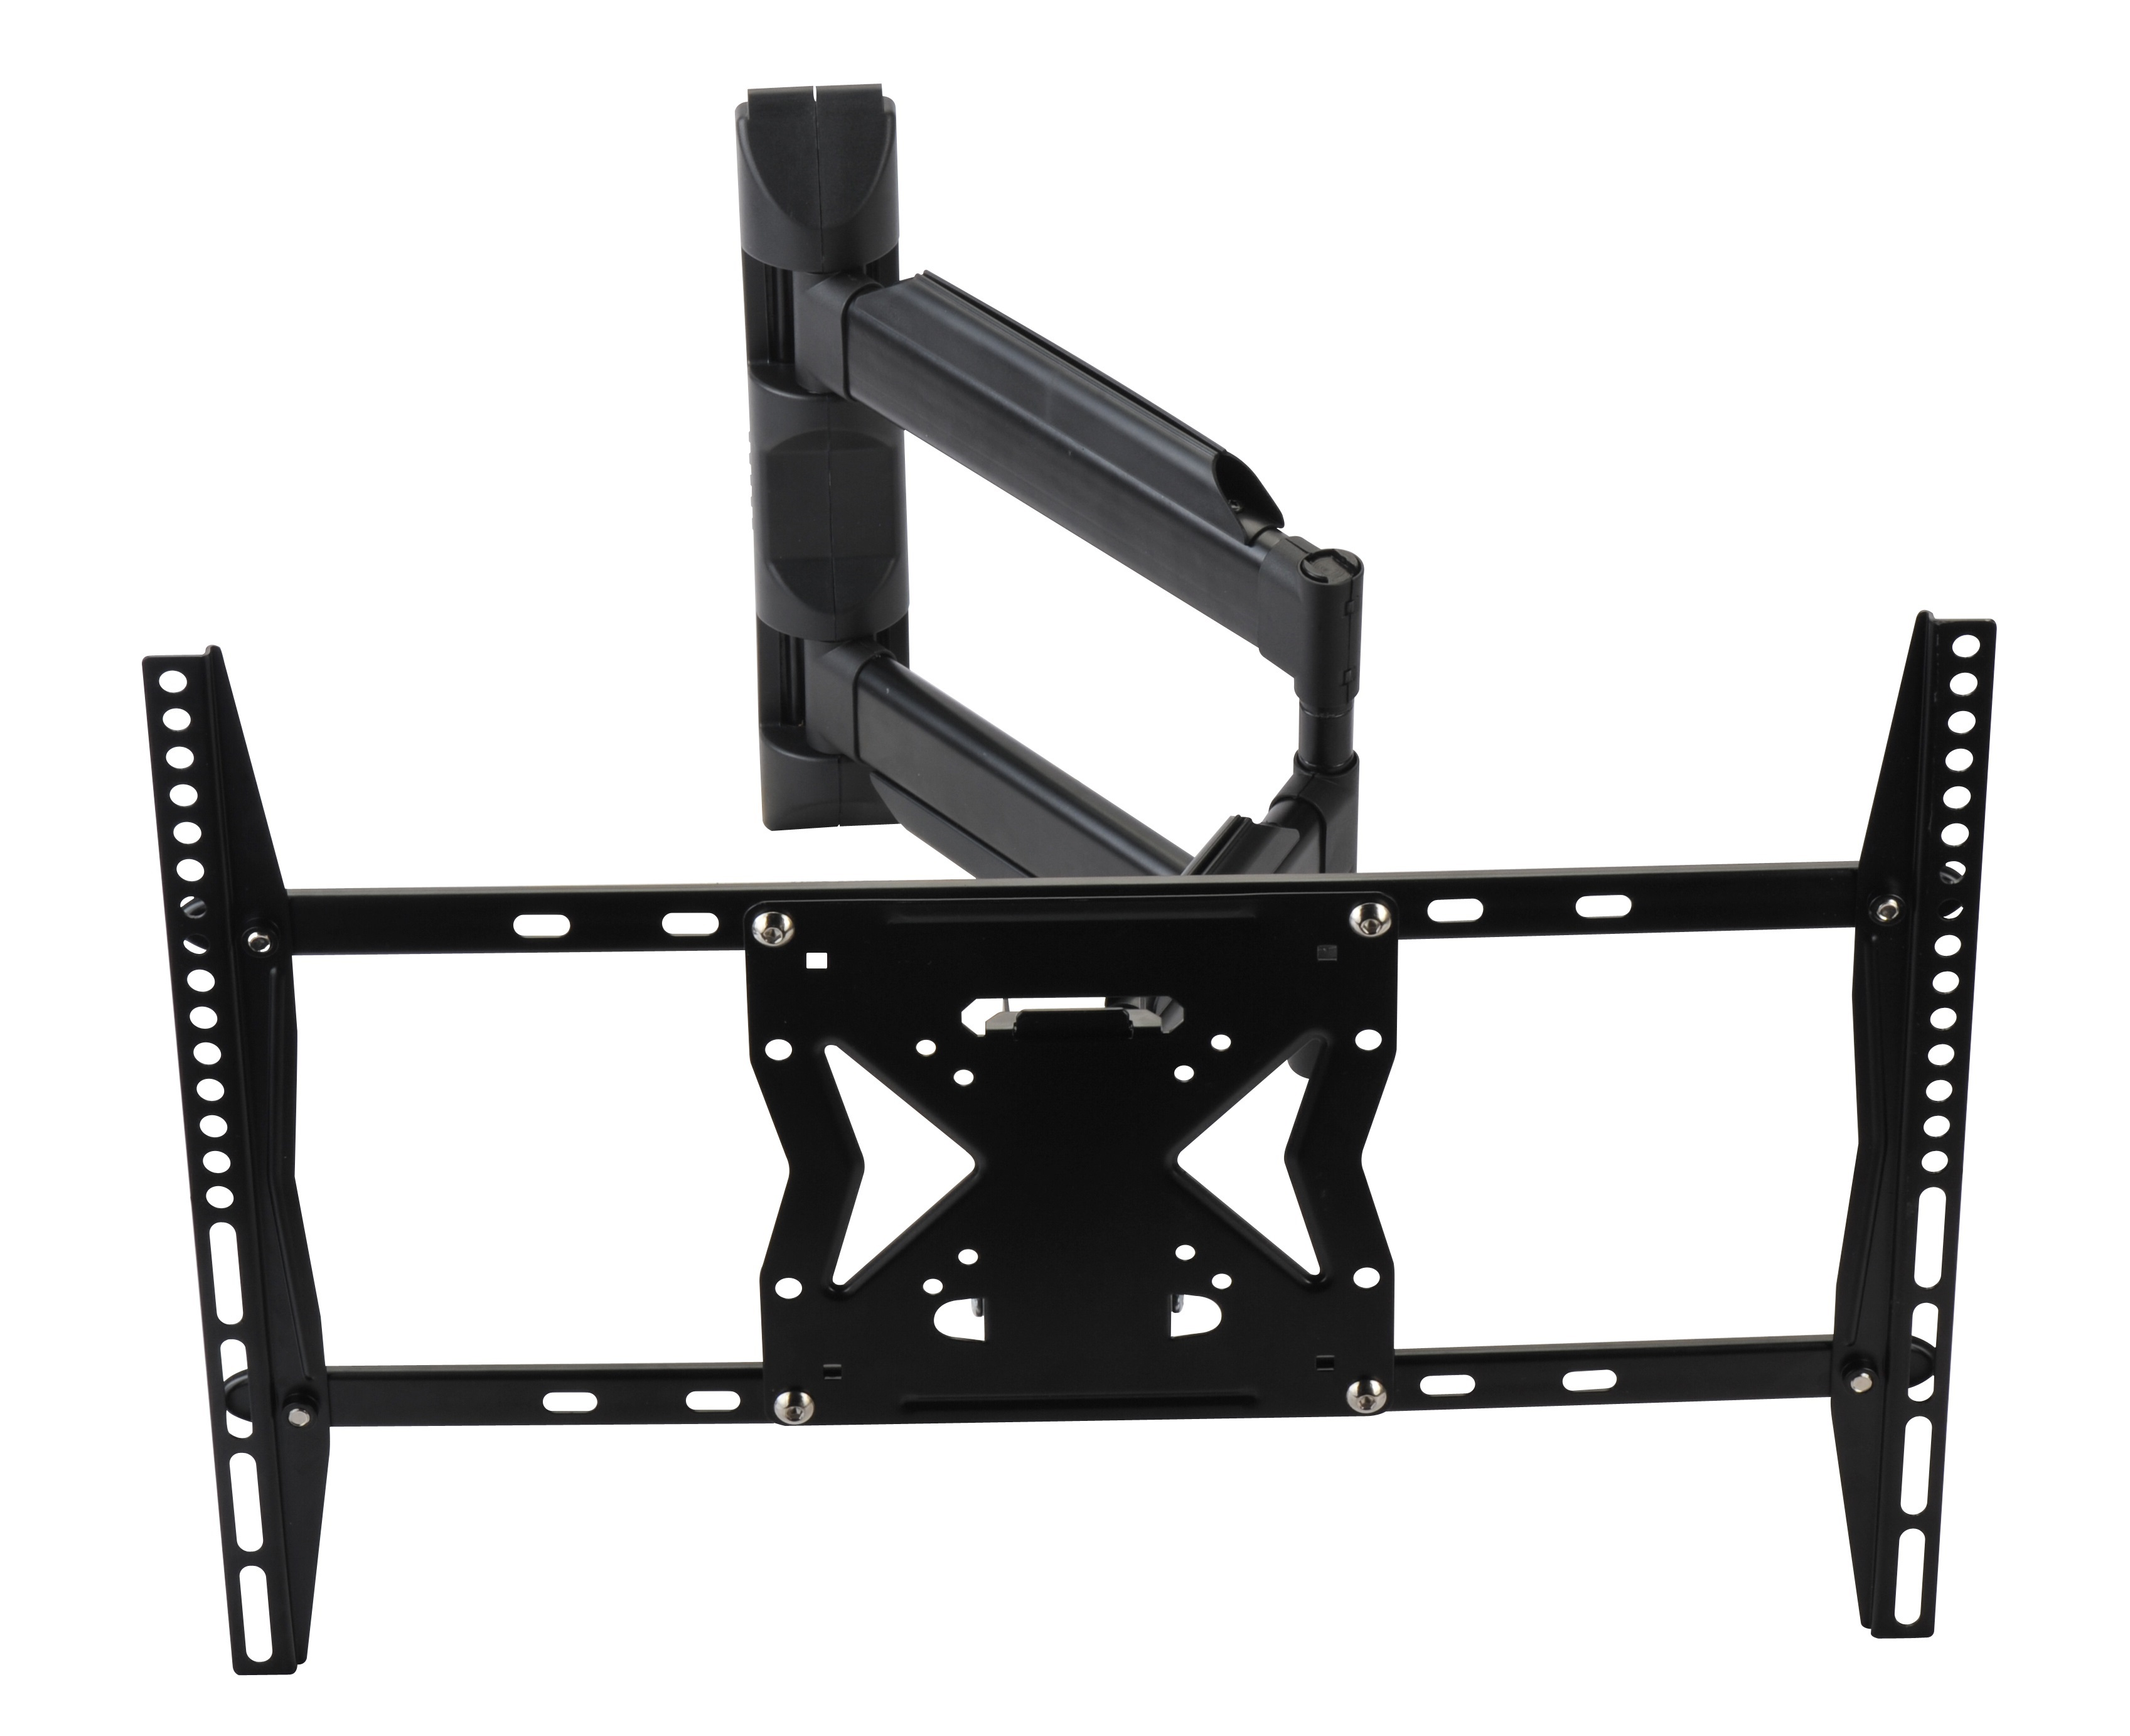 Large Super Slim Cantilever LED TV Wall Bracket For TV Screens 32 Up To 64  Inch